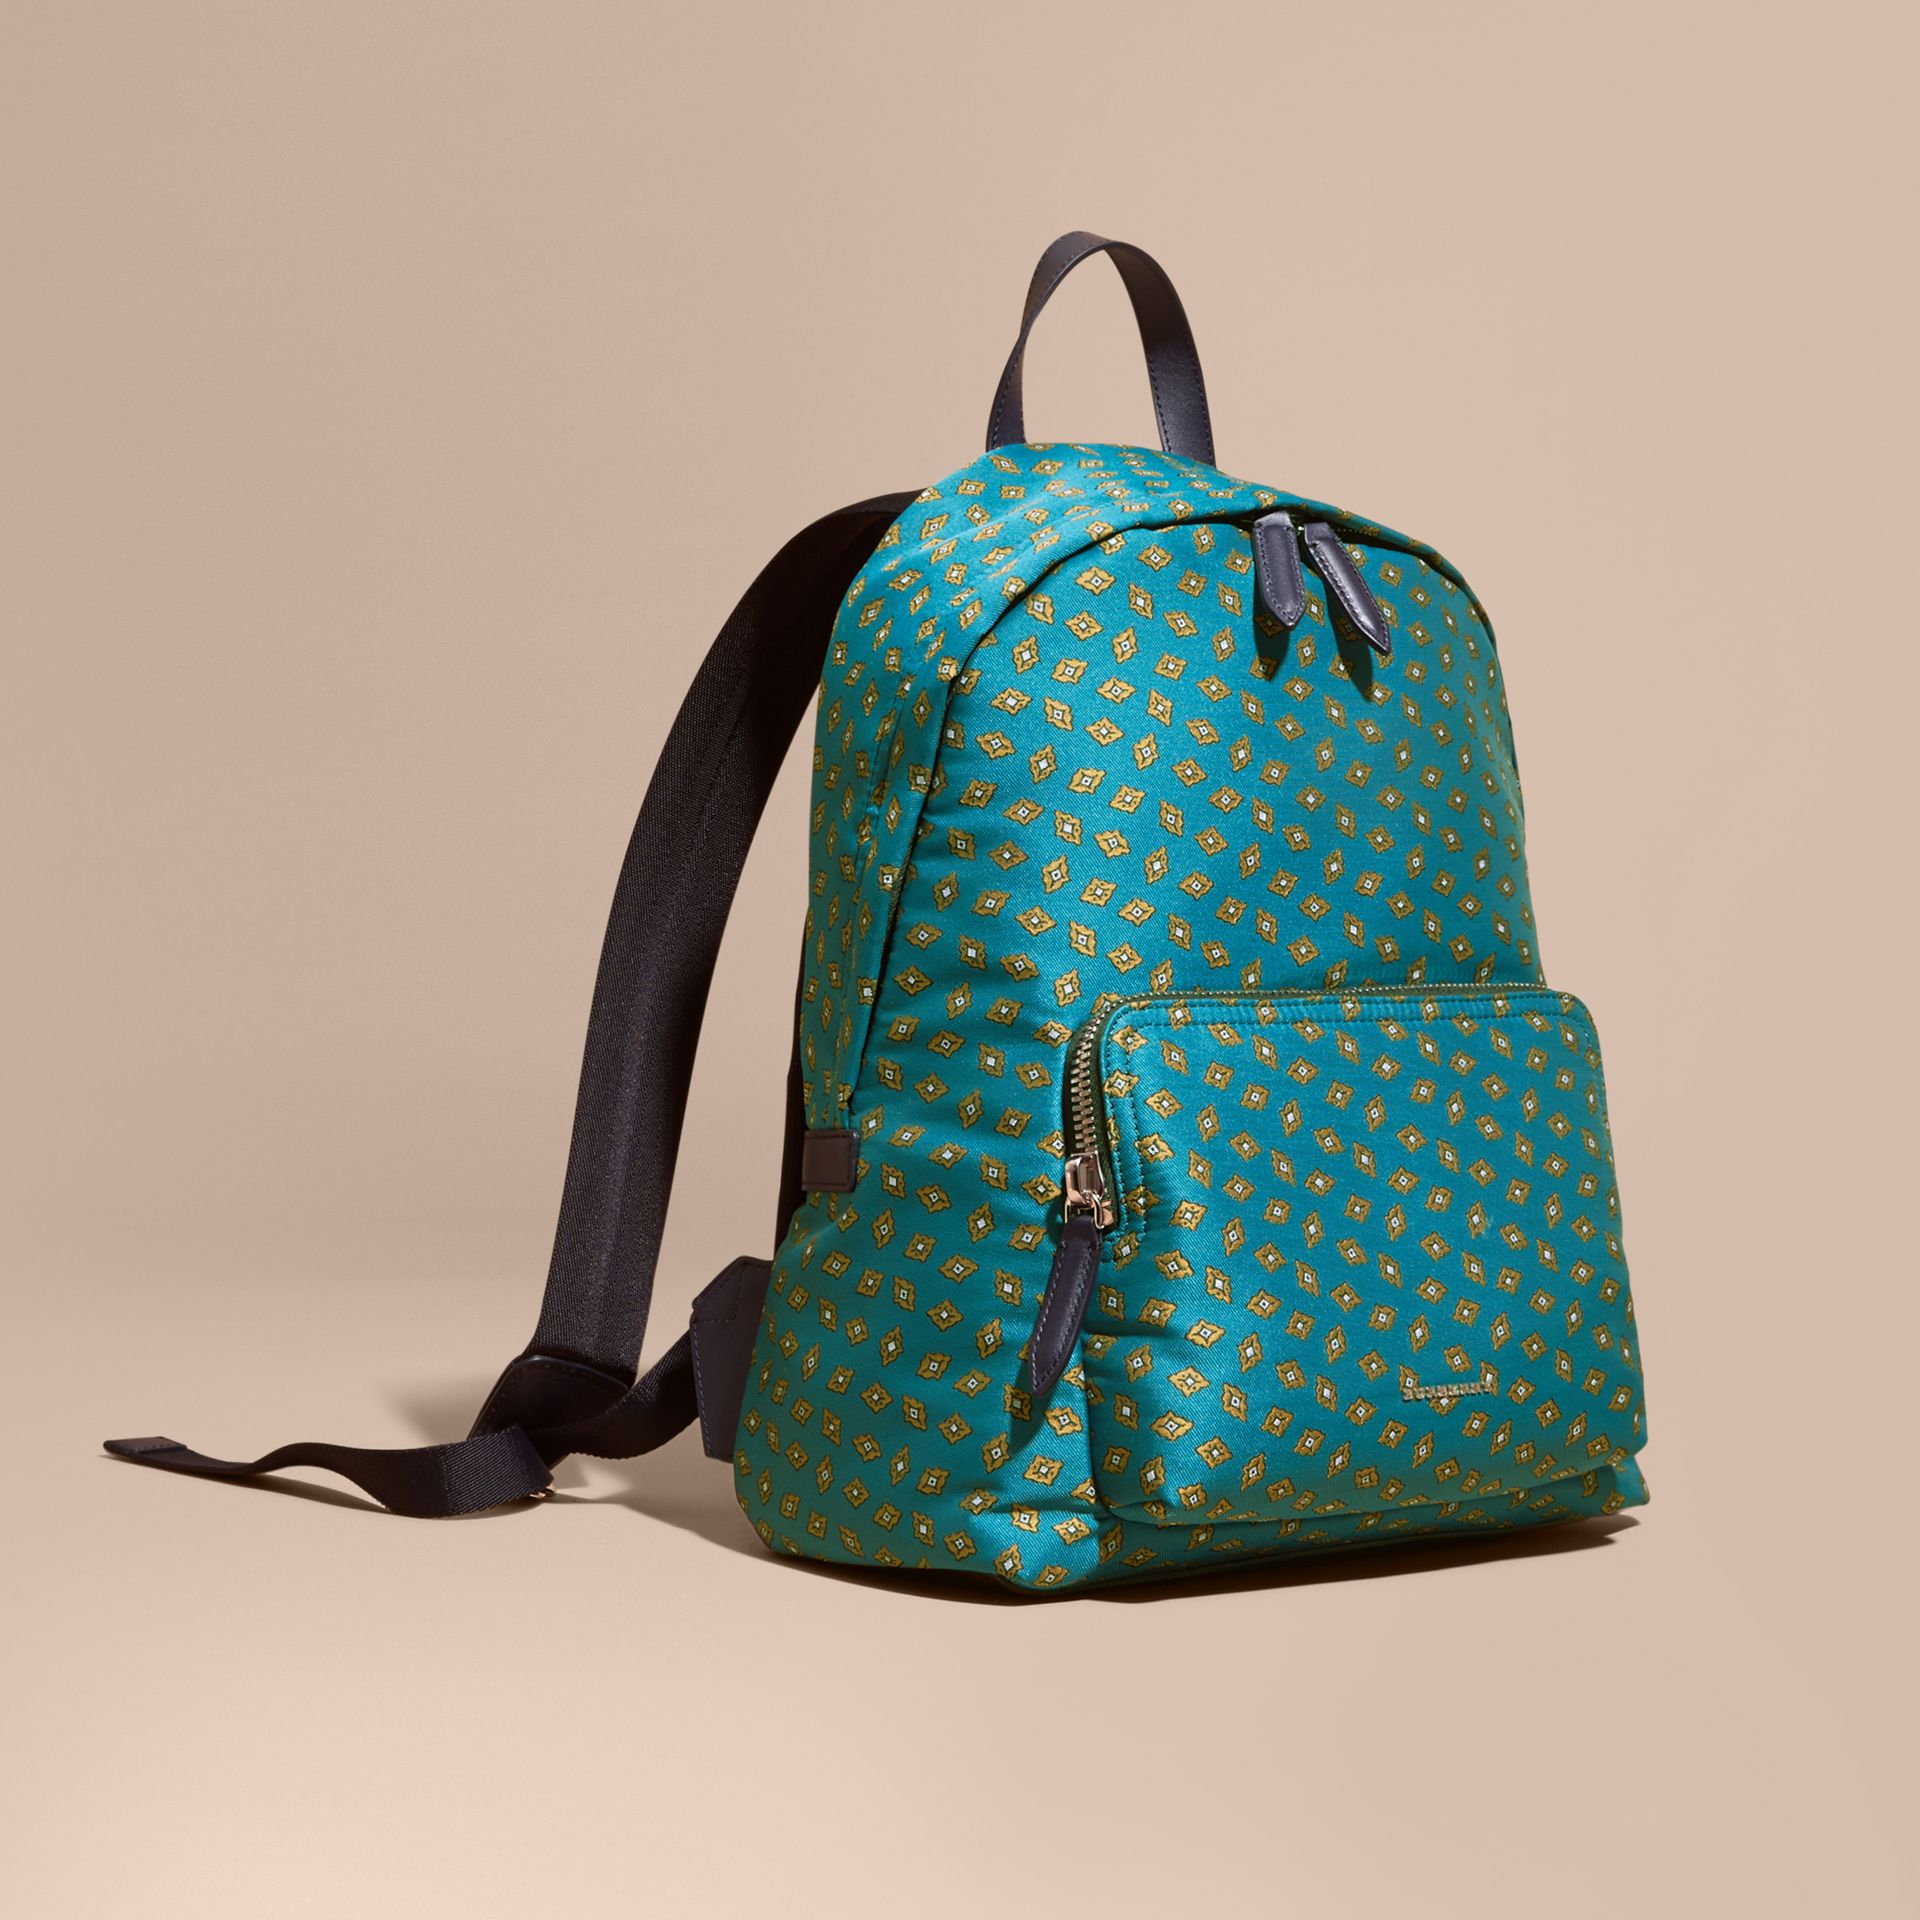 Dark teal Leather Trim Abstract Jacquard Backpack Dark Teal - gallery image 1